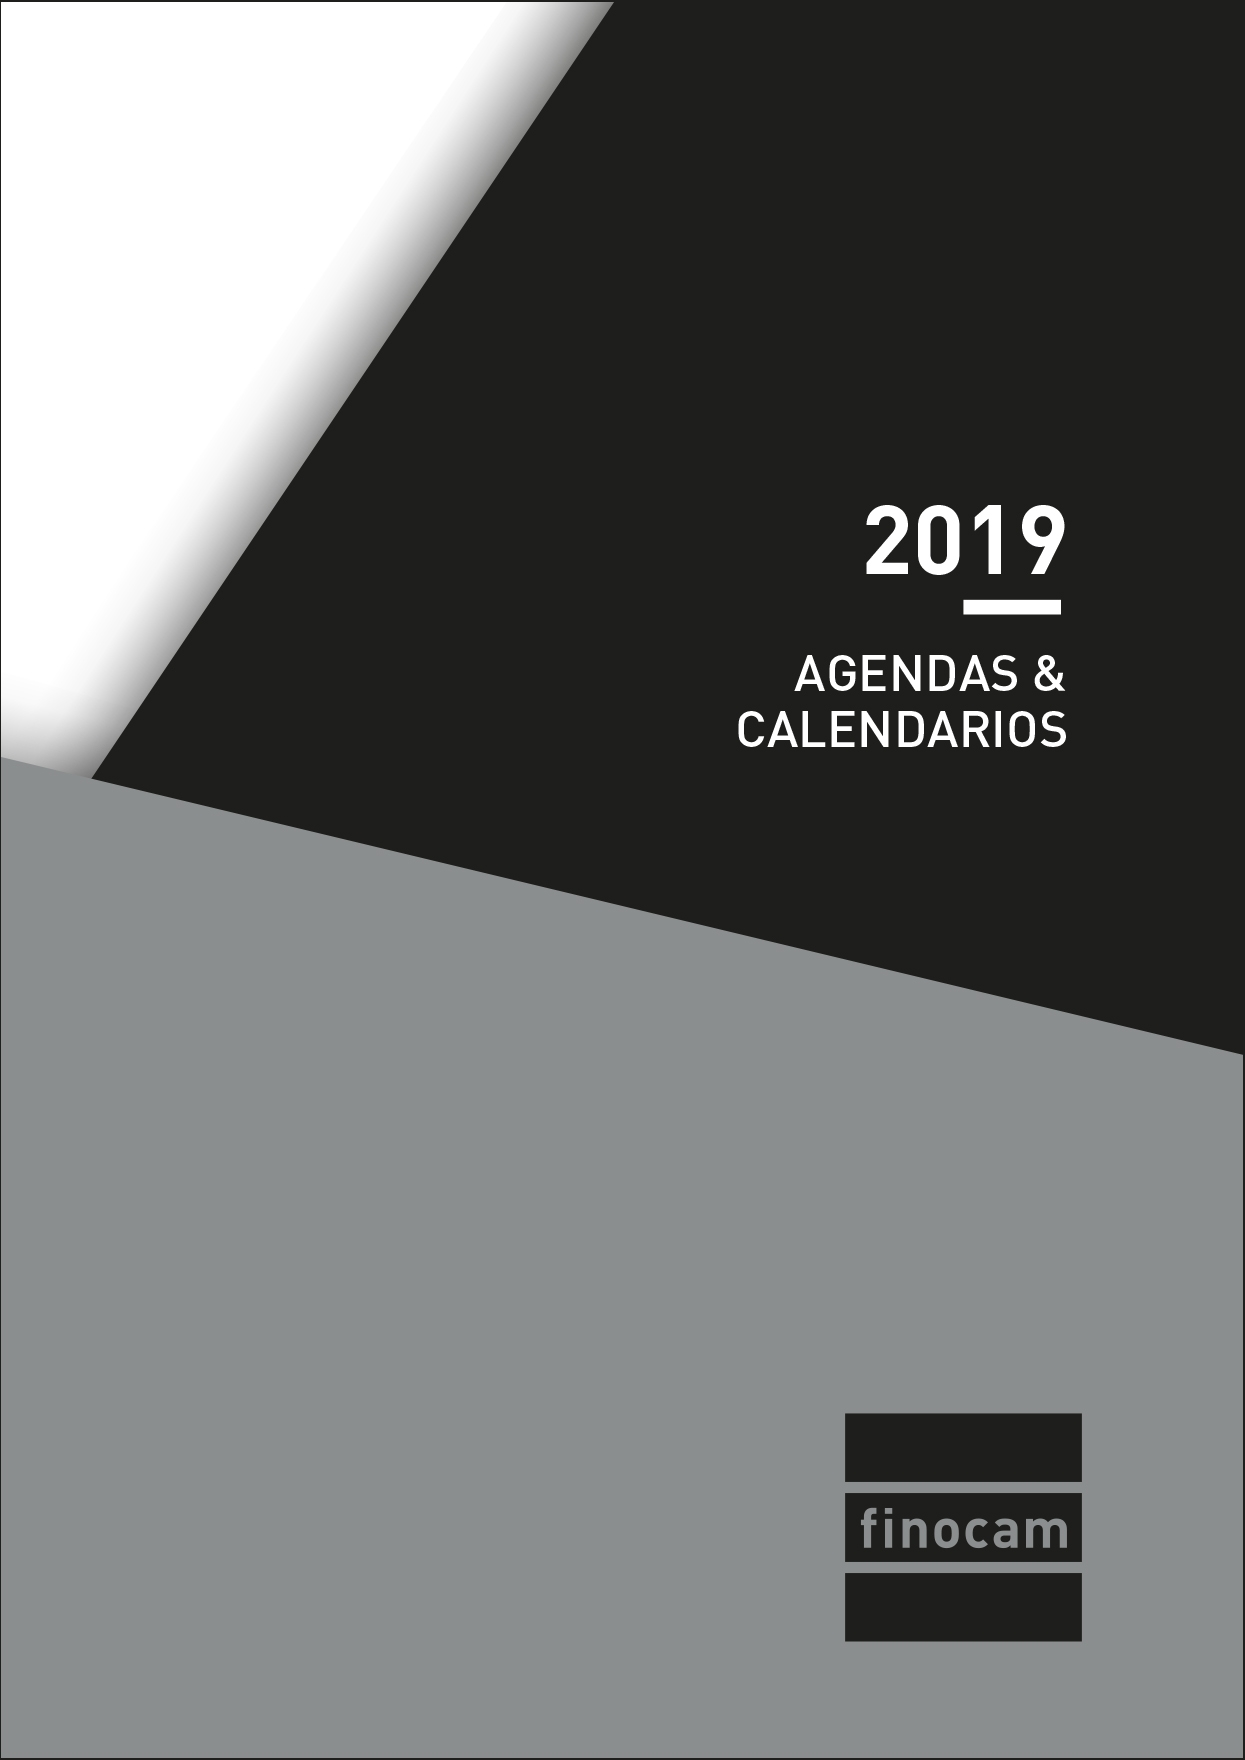 Finocam - Catàleg Angendes i Calendaris 2019